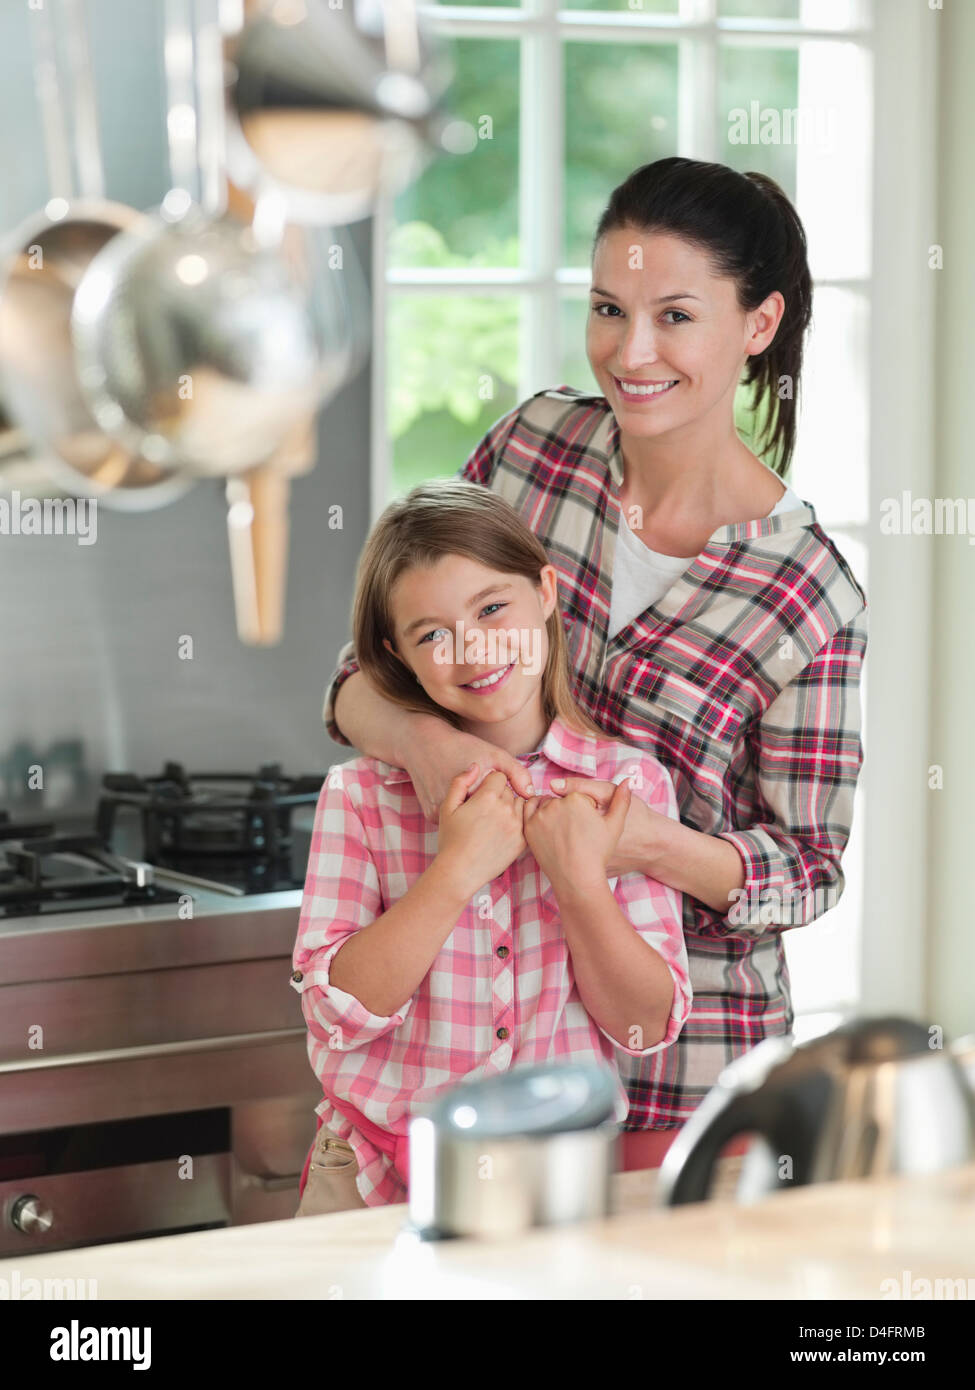 Woman hugging daughter in kitchen - Stock Image